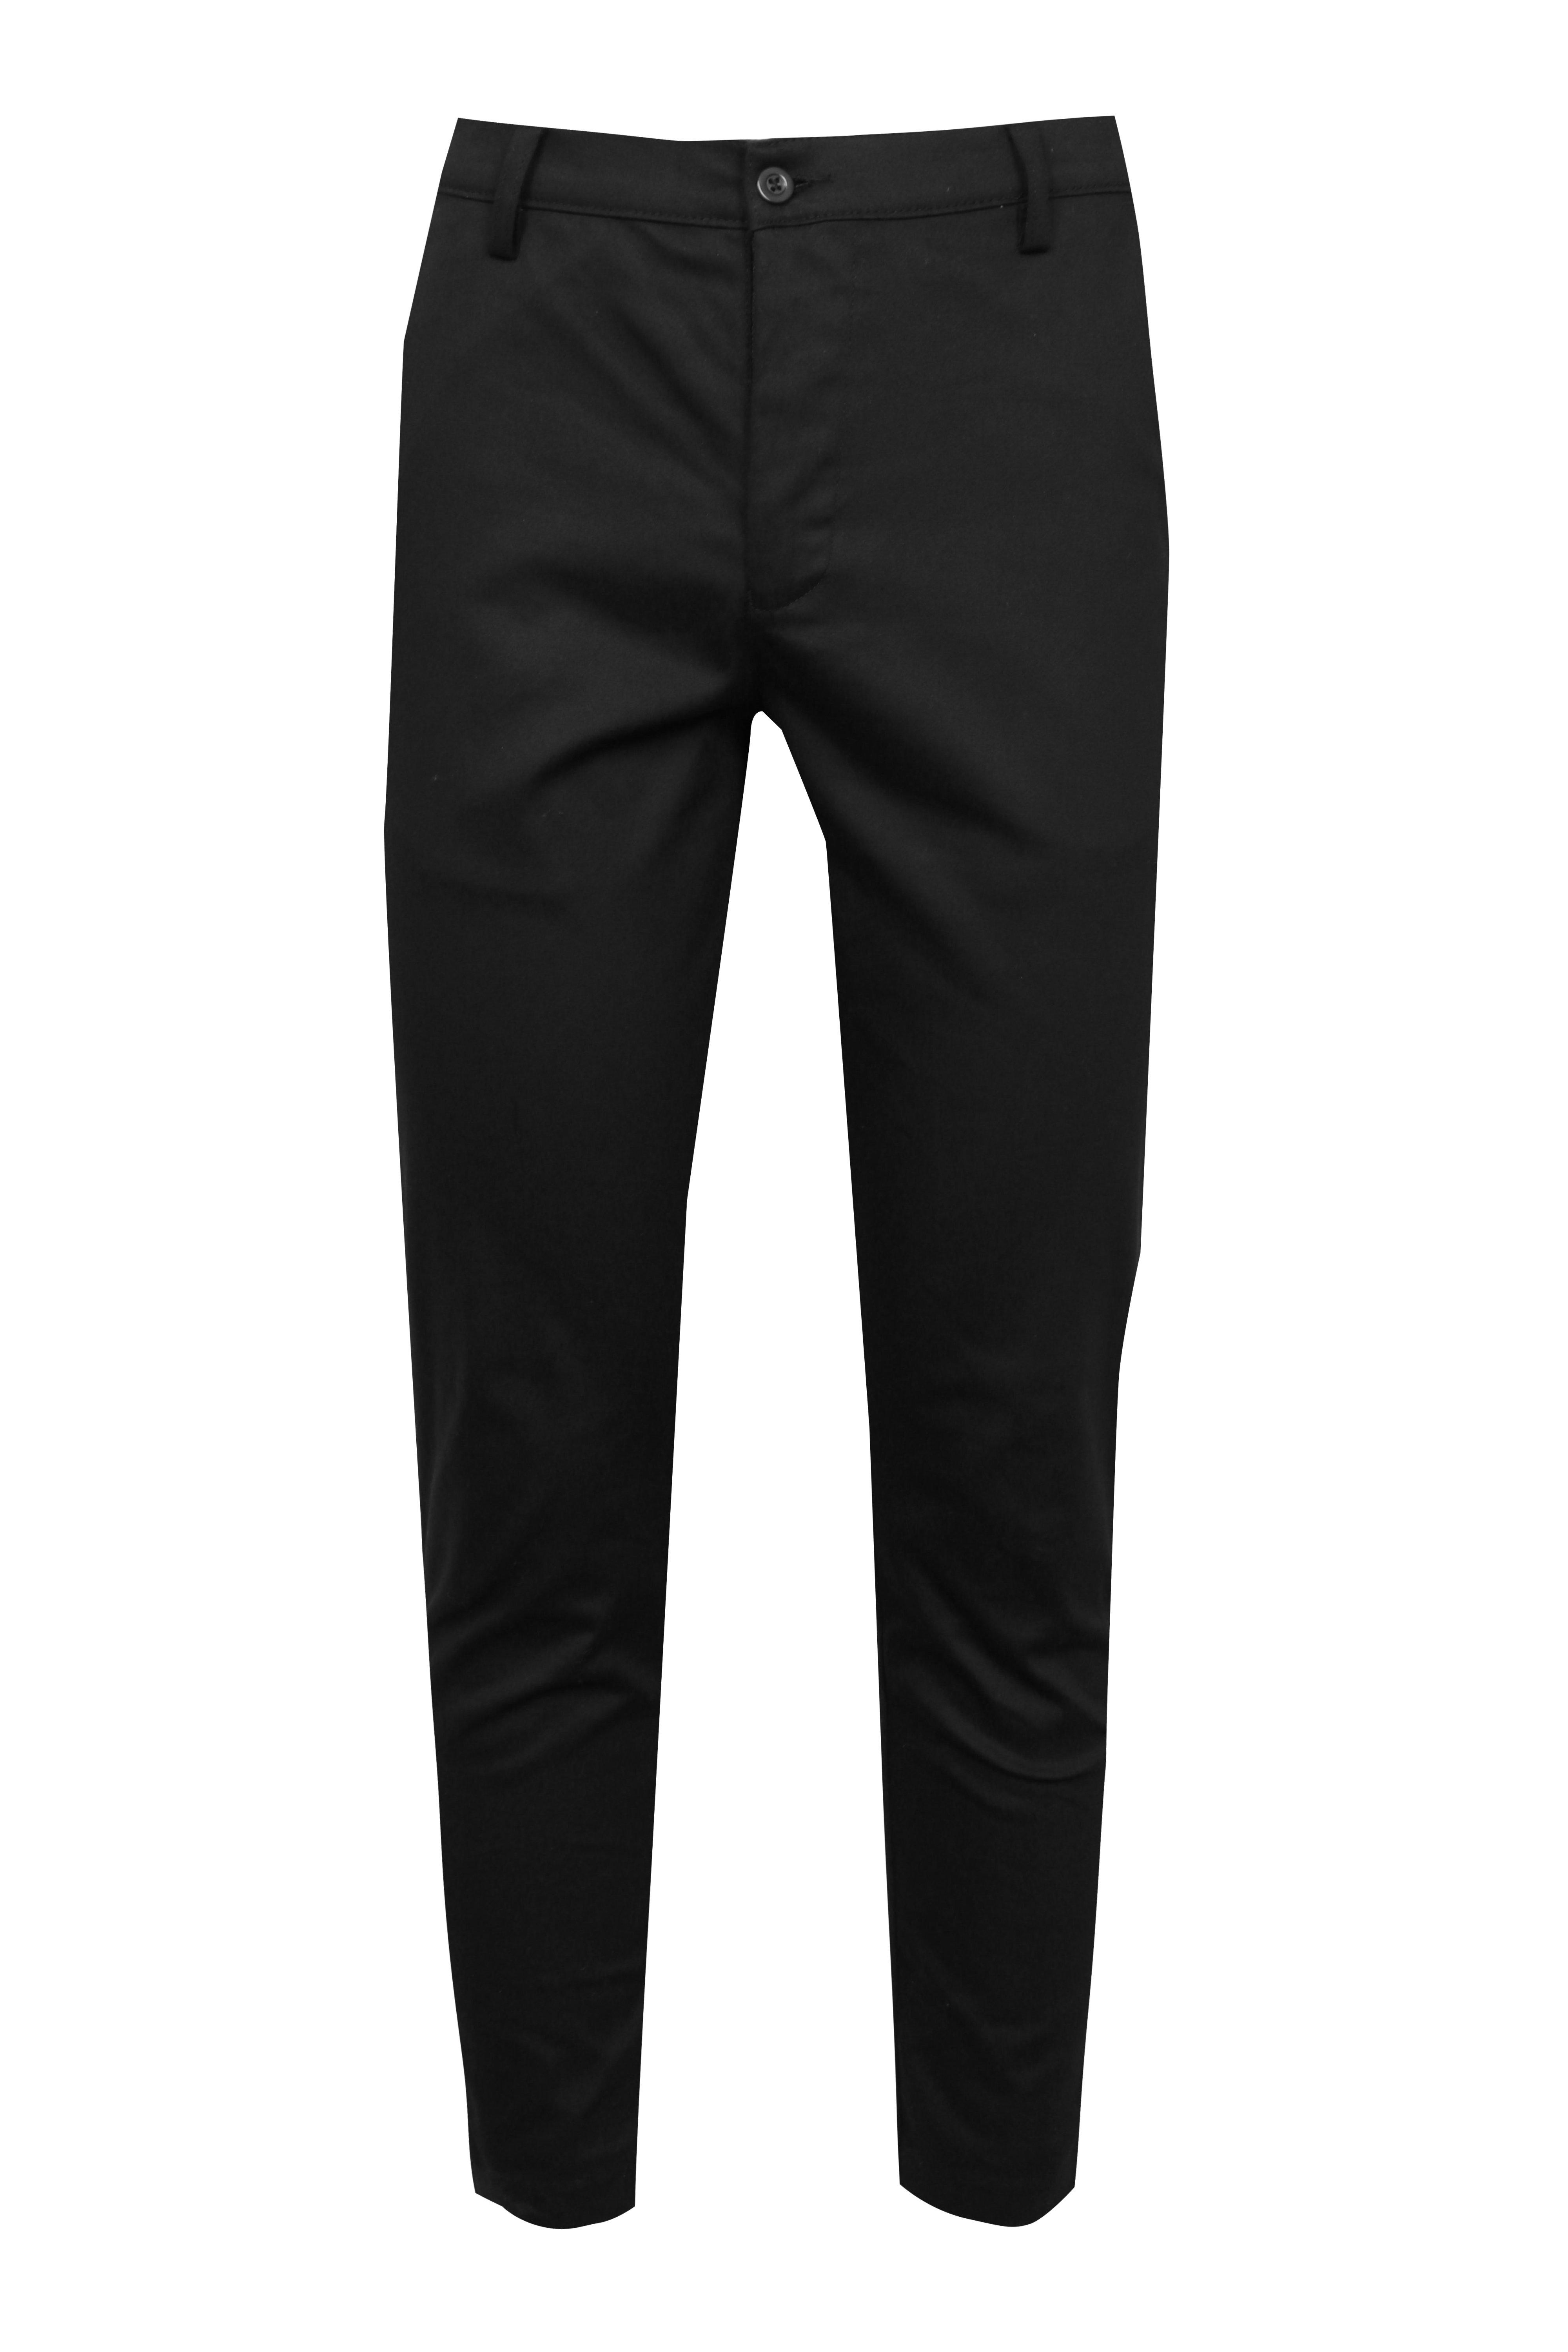 boohooMAN black Slim Fit Chino With Stretch